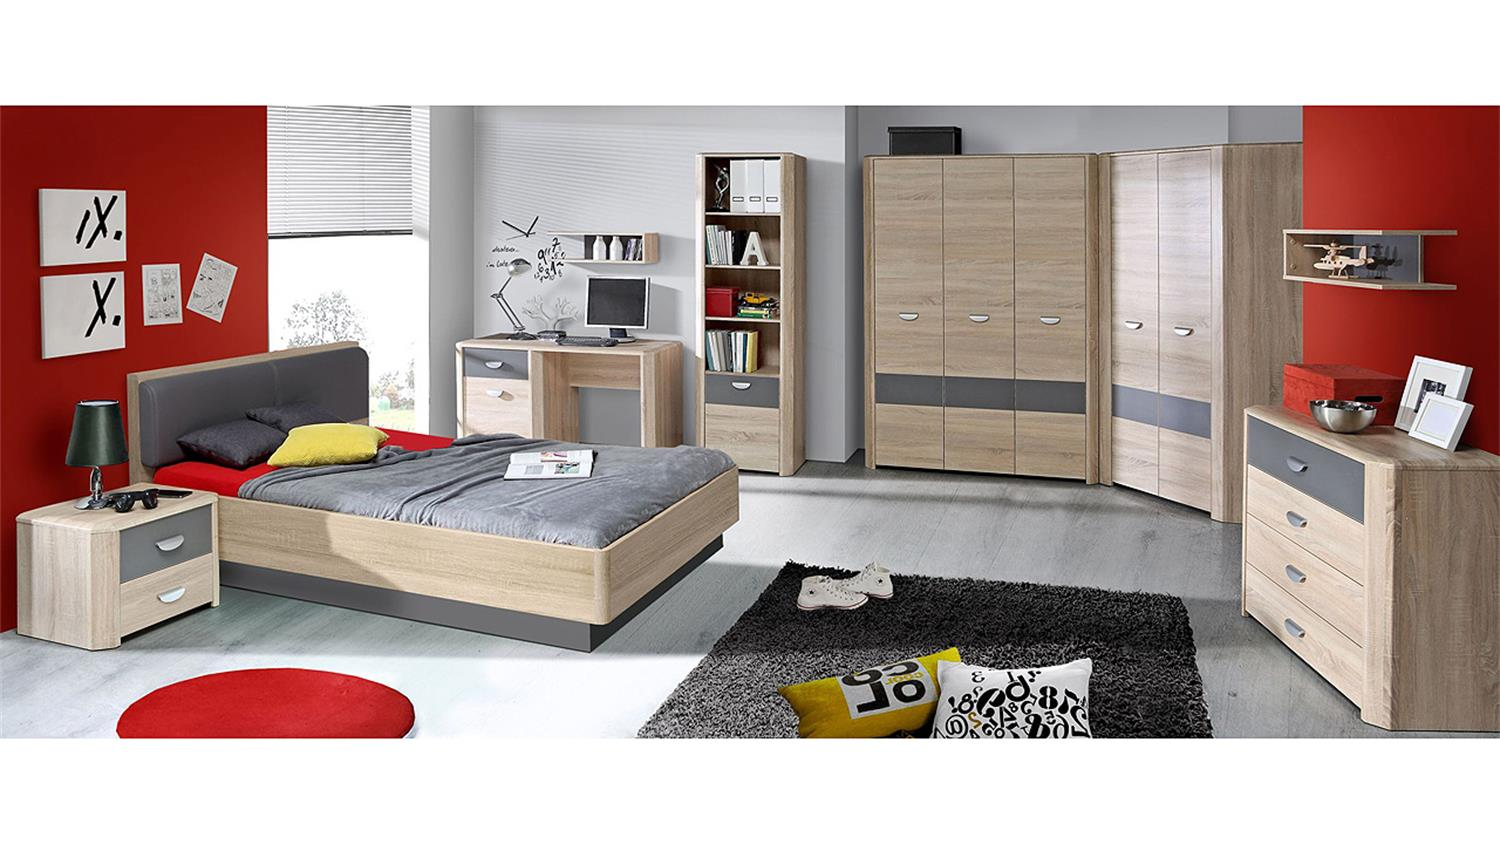 bett yook jugendzimmerbett sonoma eiche grau anthrazit 140. Black Bedroom Furniture Sets. Home Design Ideas